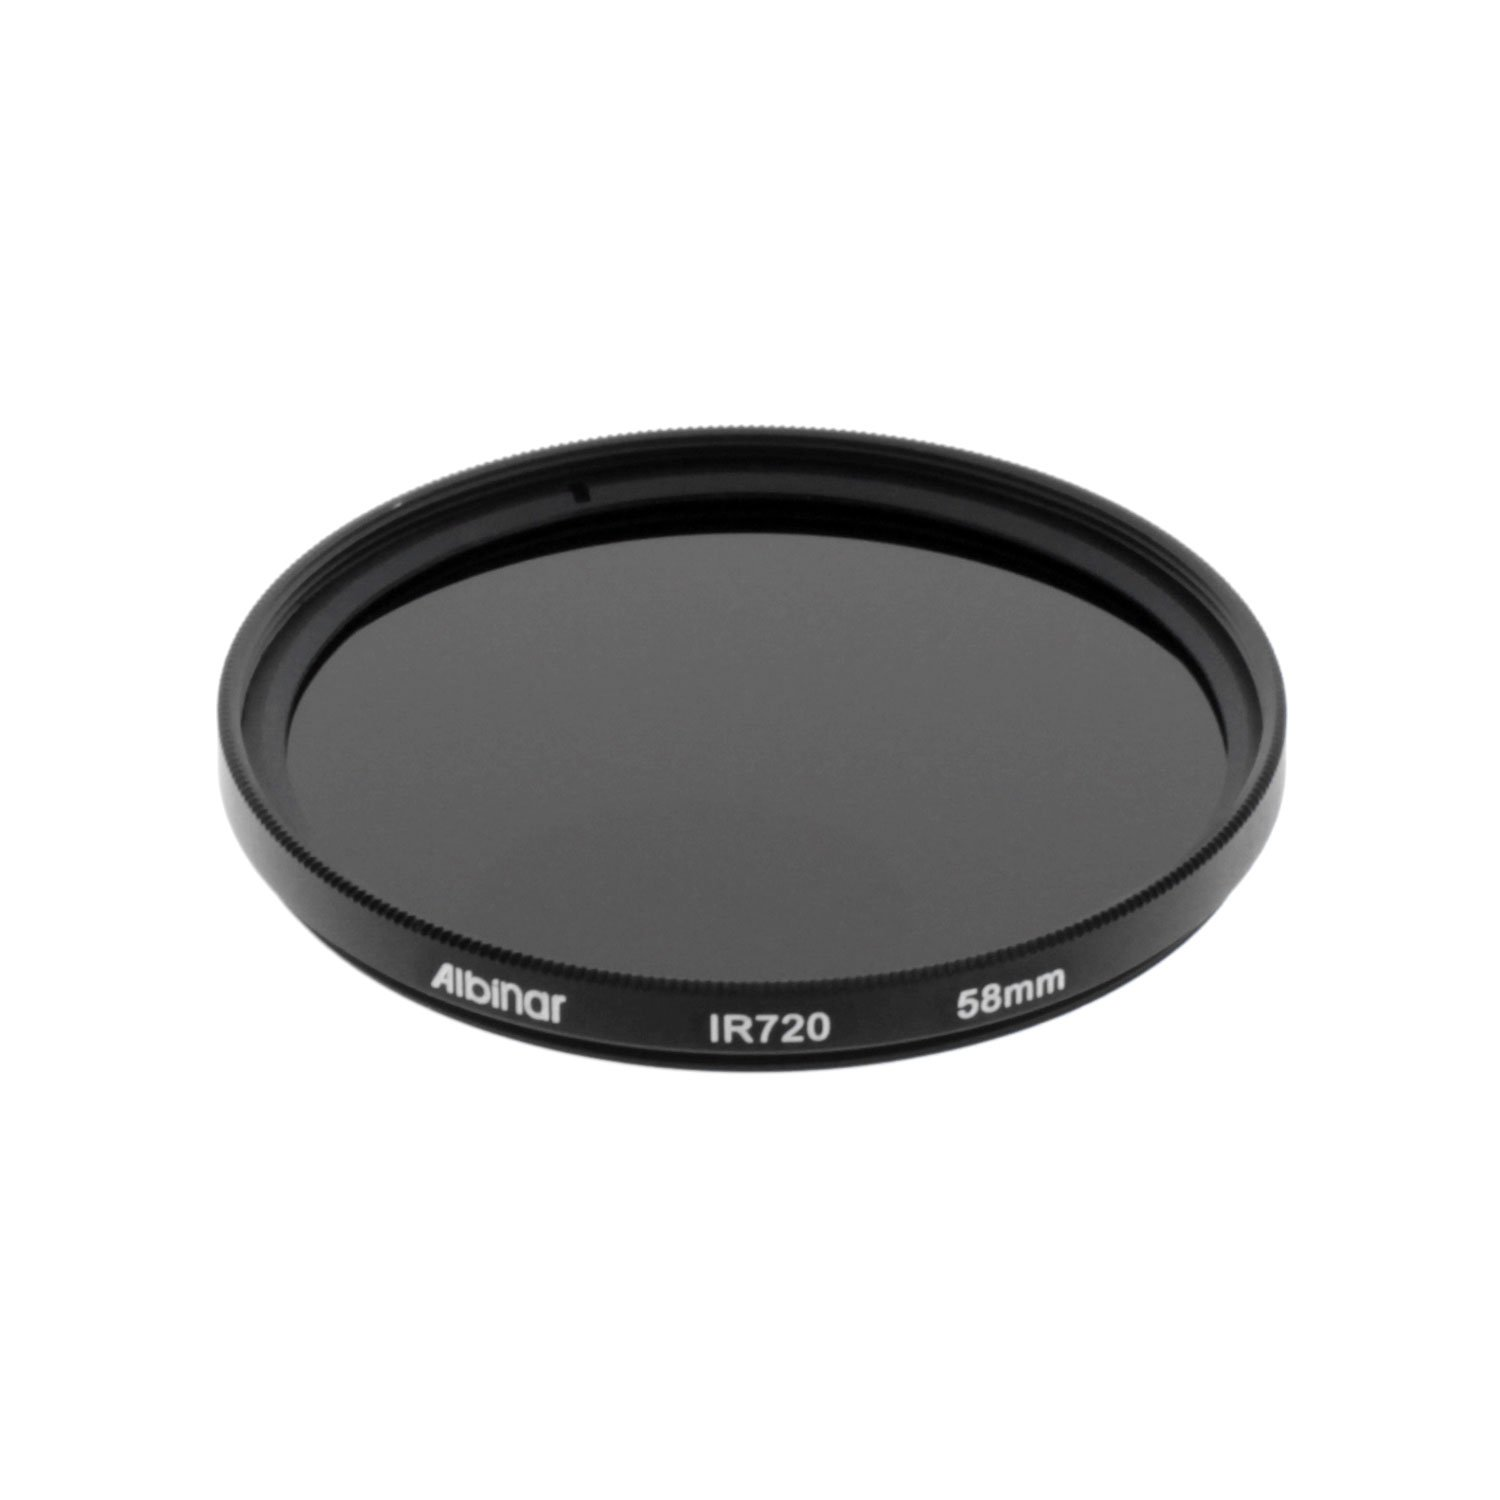 Albinar 58mm Infrared 720nm Digital Pro Glass IR X-Ray Filter Camera Lens by Albinar